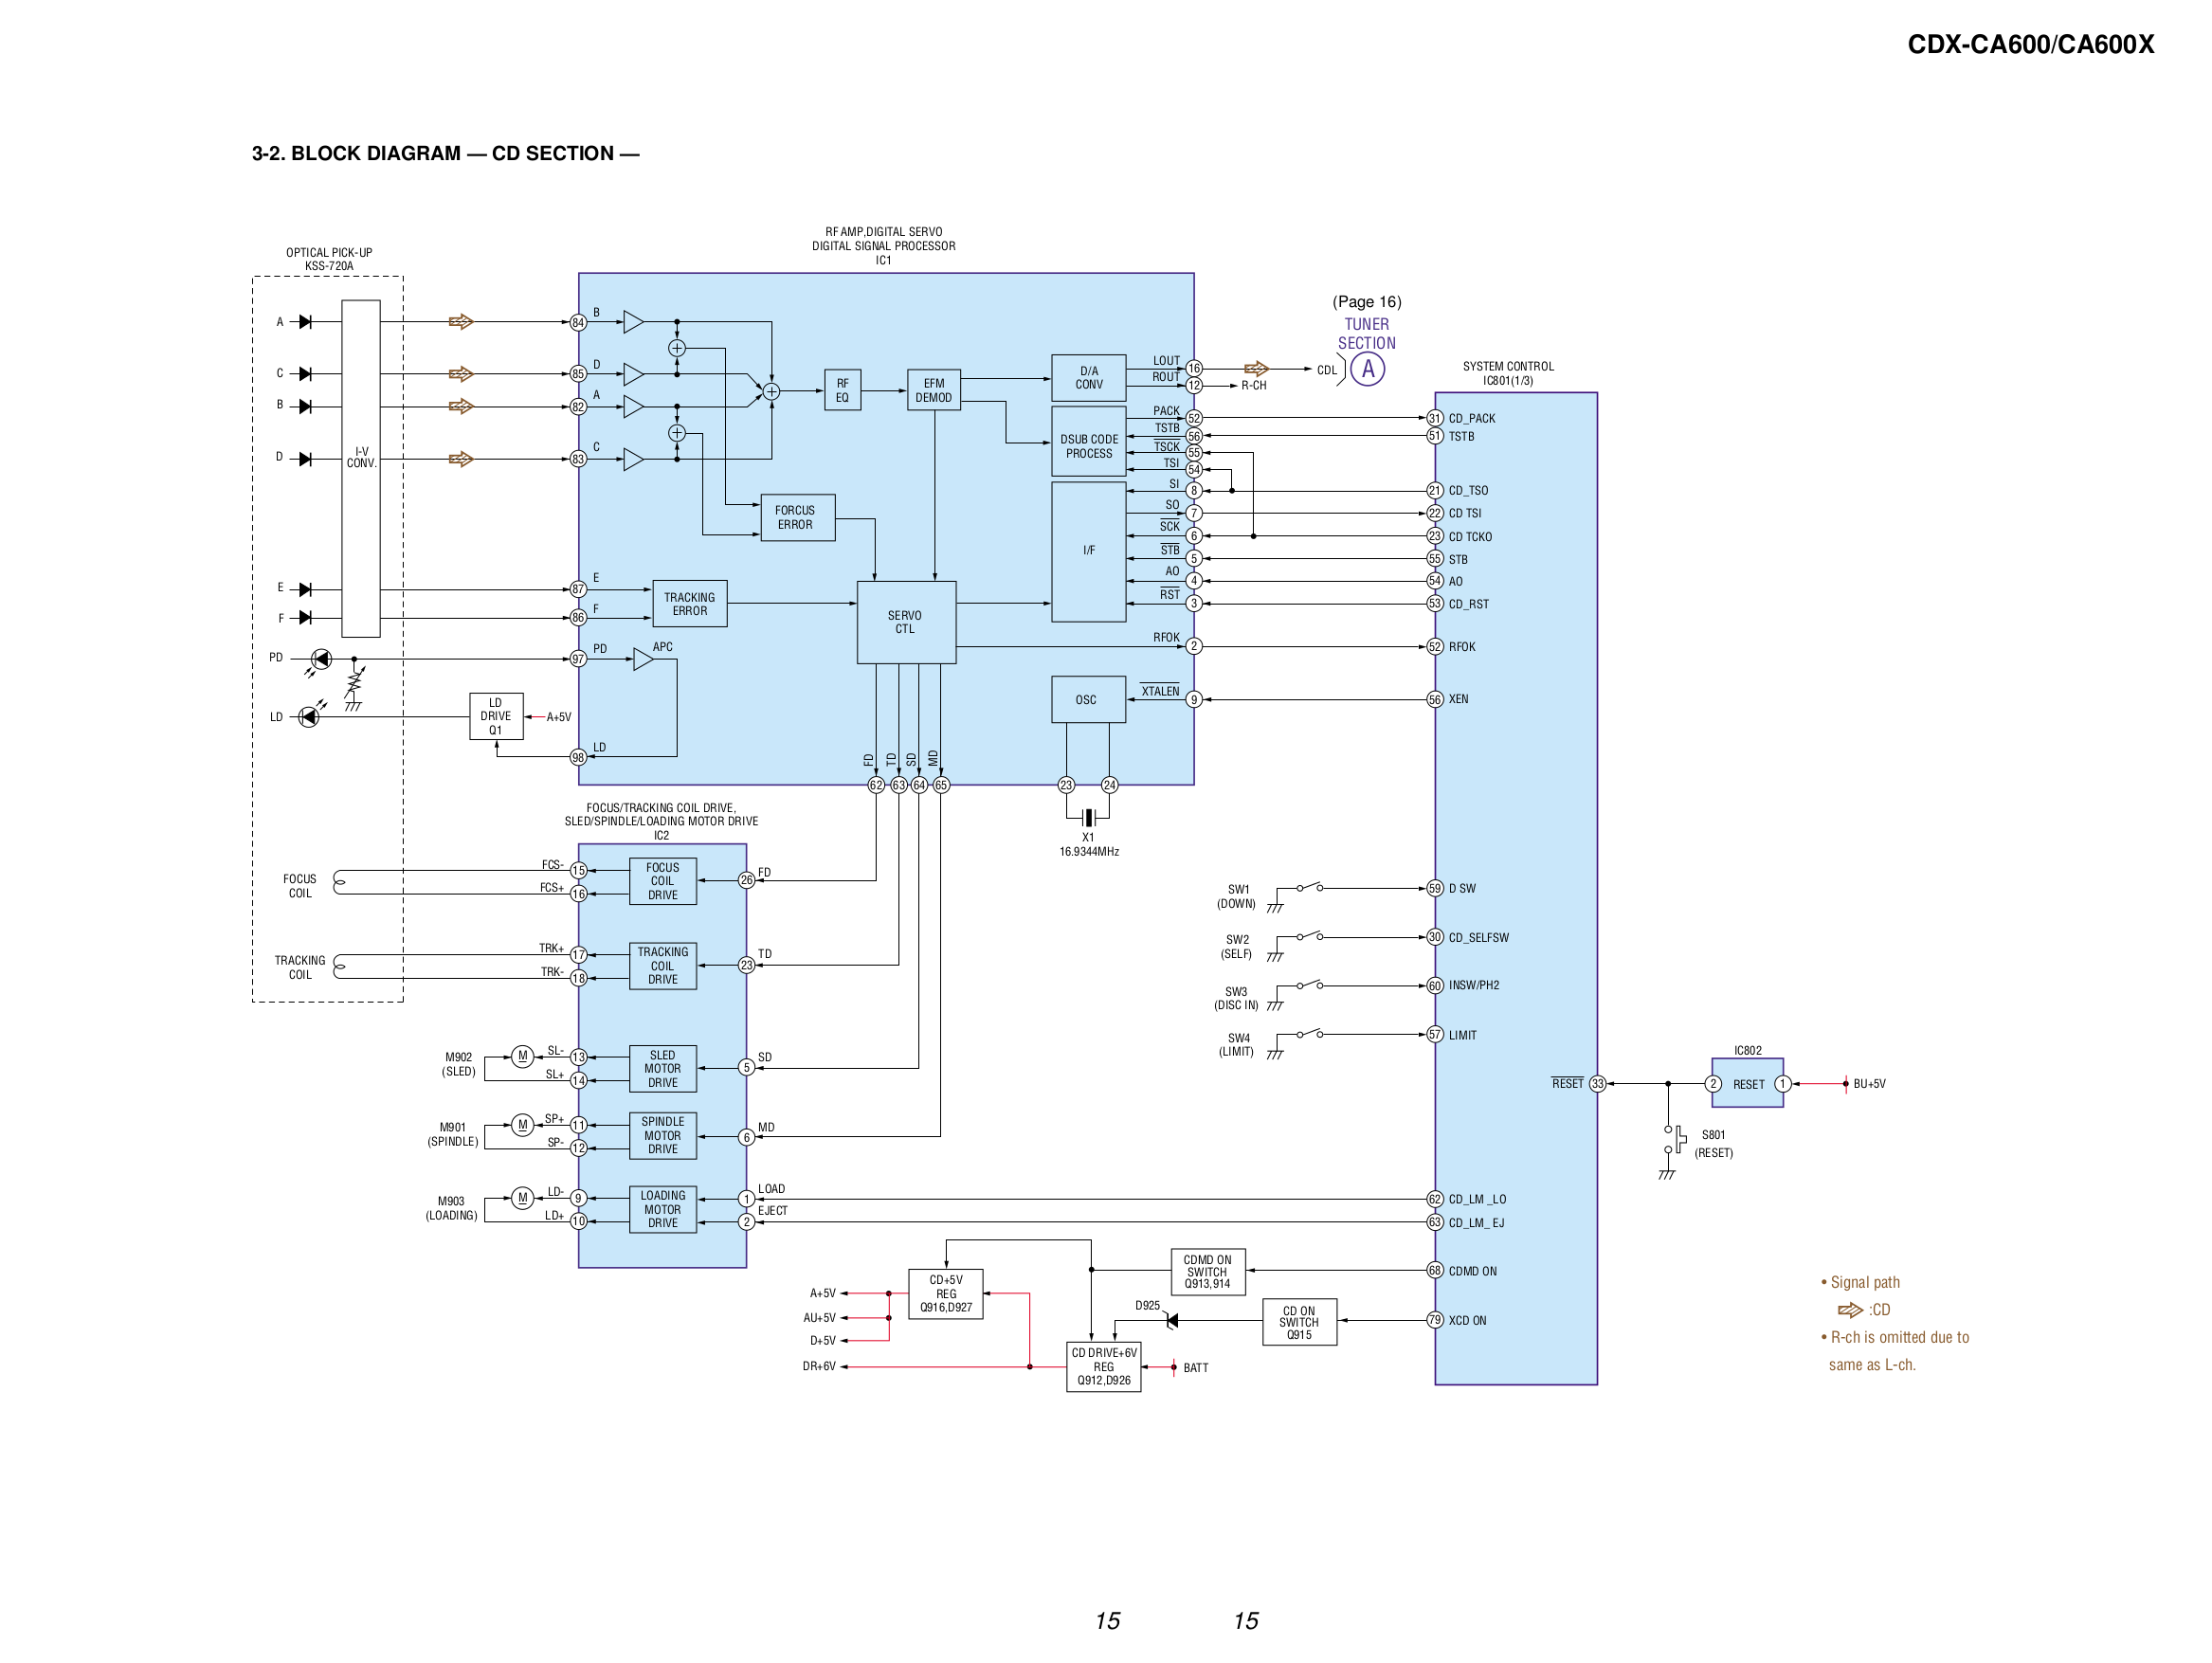 Sony Cdx L300 Wiring Diagram Trusted Schematics Fm Am Compact Disc Player Schematic Diagrams Kenwood Kdc